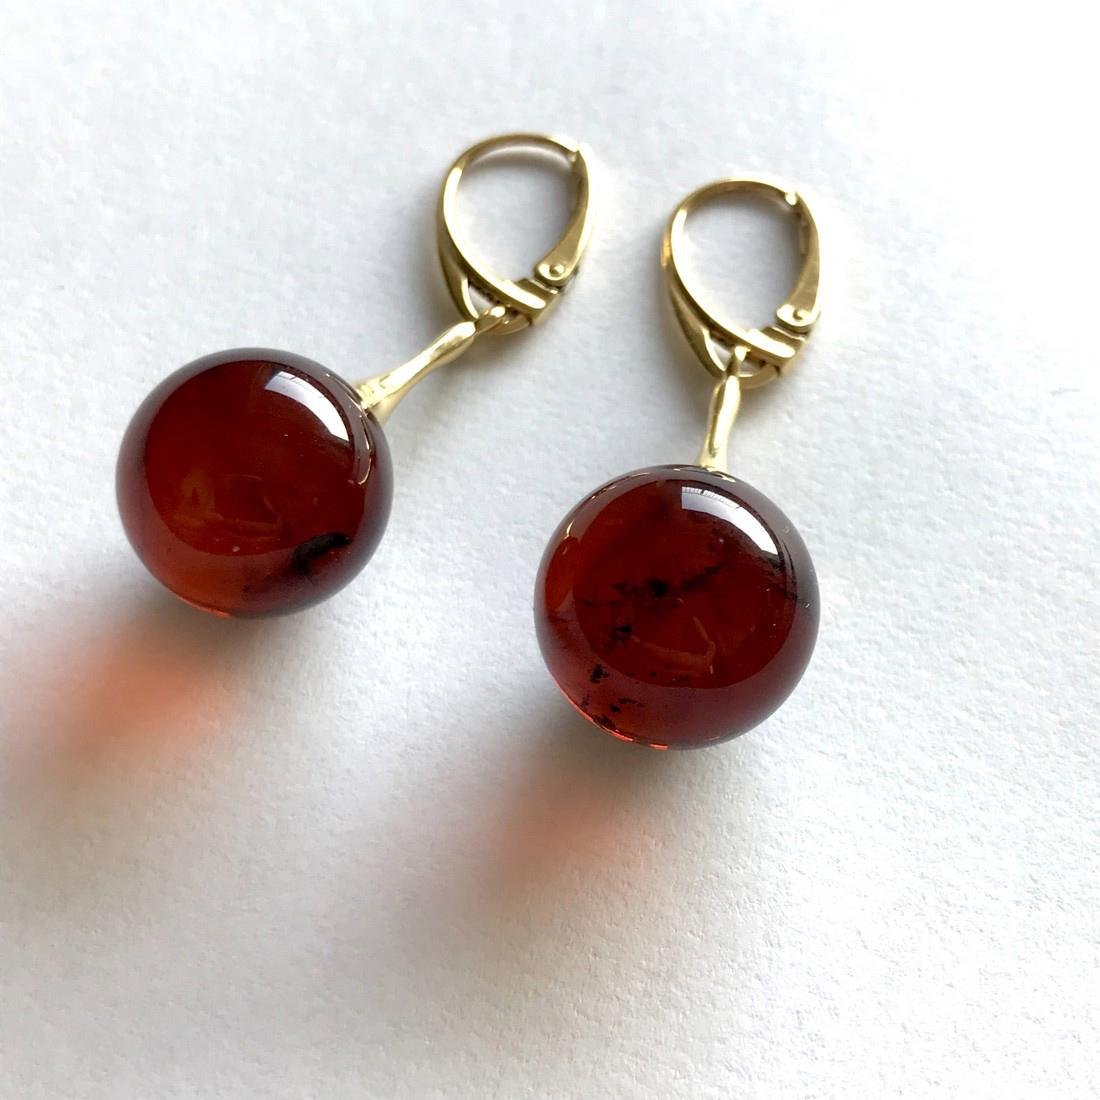 Earrings gold&silver Baltic amber balls 15mm - 4